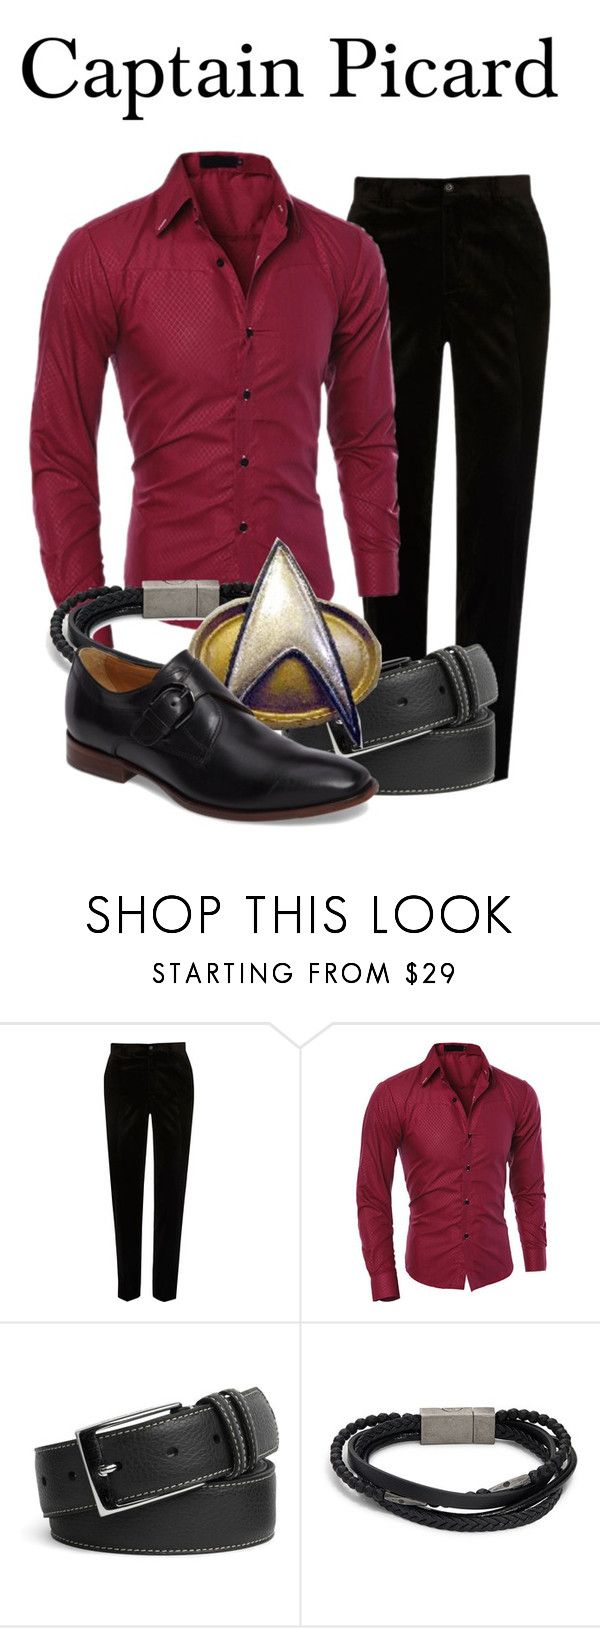 """""""Captain Picard"""" by megan-vanwinkle ❤ liked on Polyvore featuring River Island, Peter Millar, Saks Fifth Avenue, Johnston & Murphy, men's fashion and menswear"""